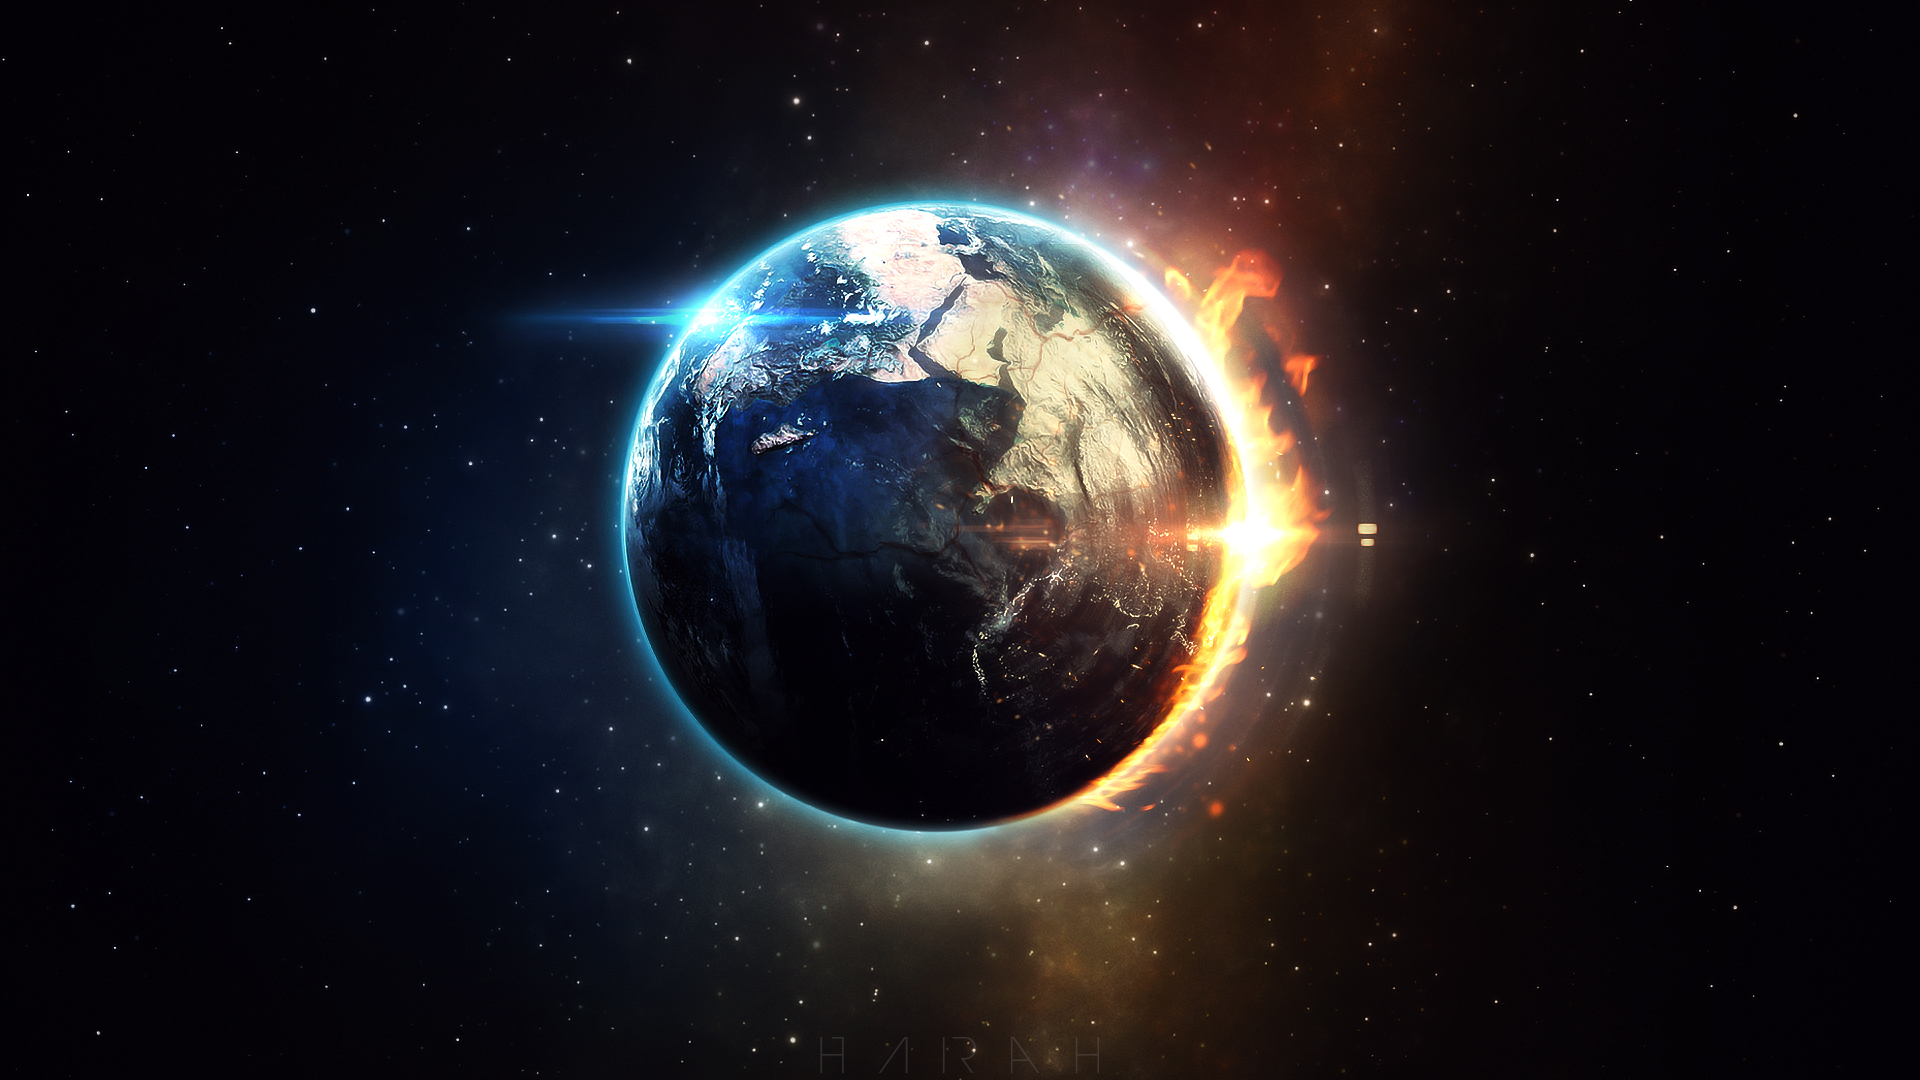 Free Download 2015 End Of The World Wallpaper 1920x1080 For Your